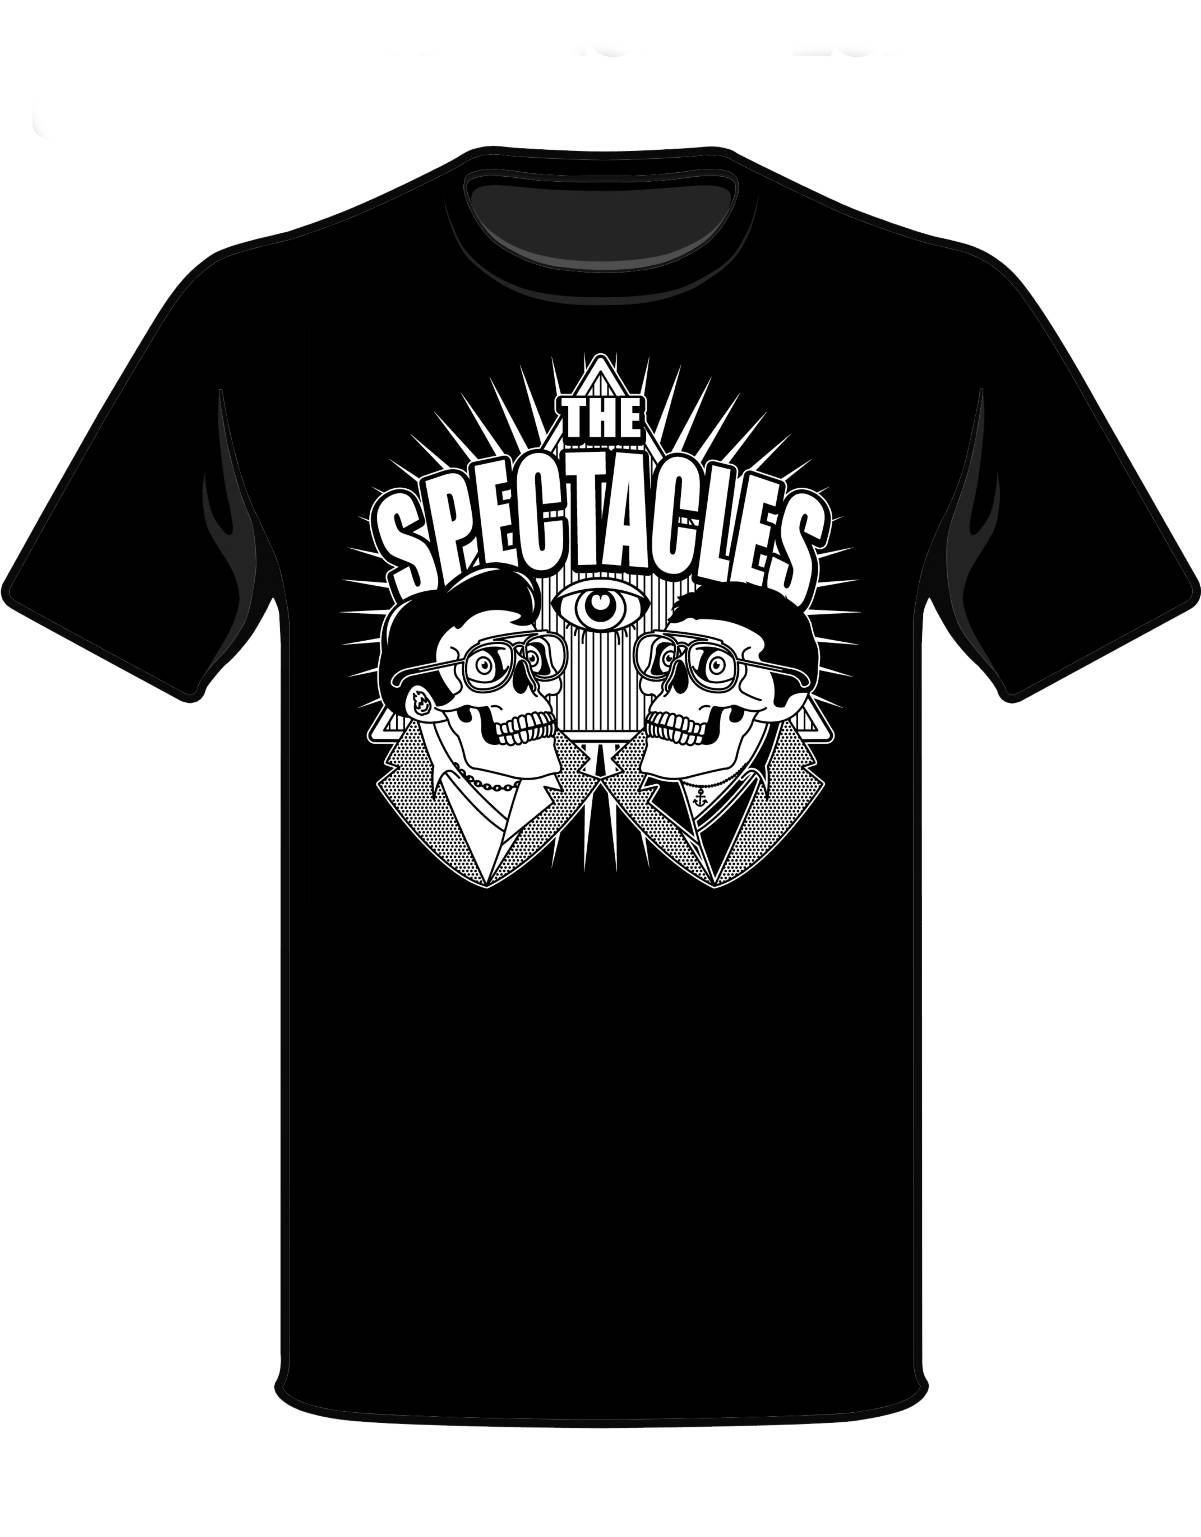 spectacles shirt front